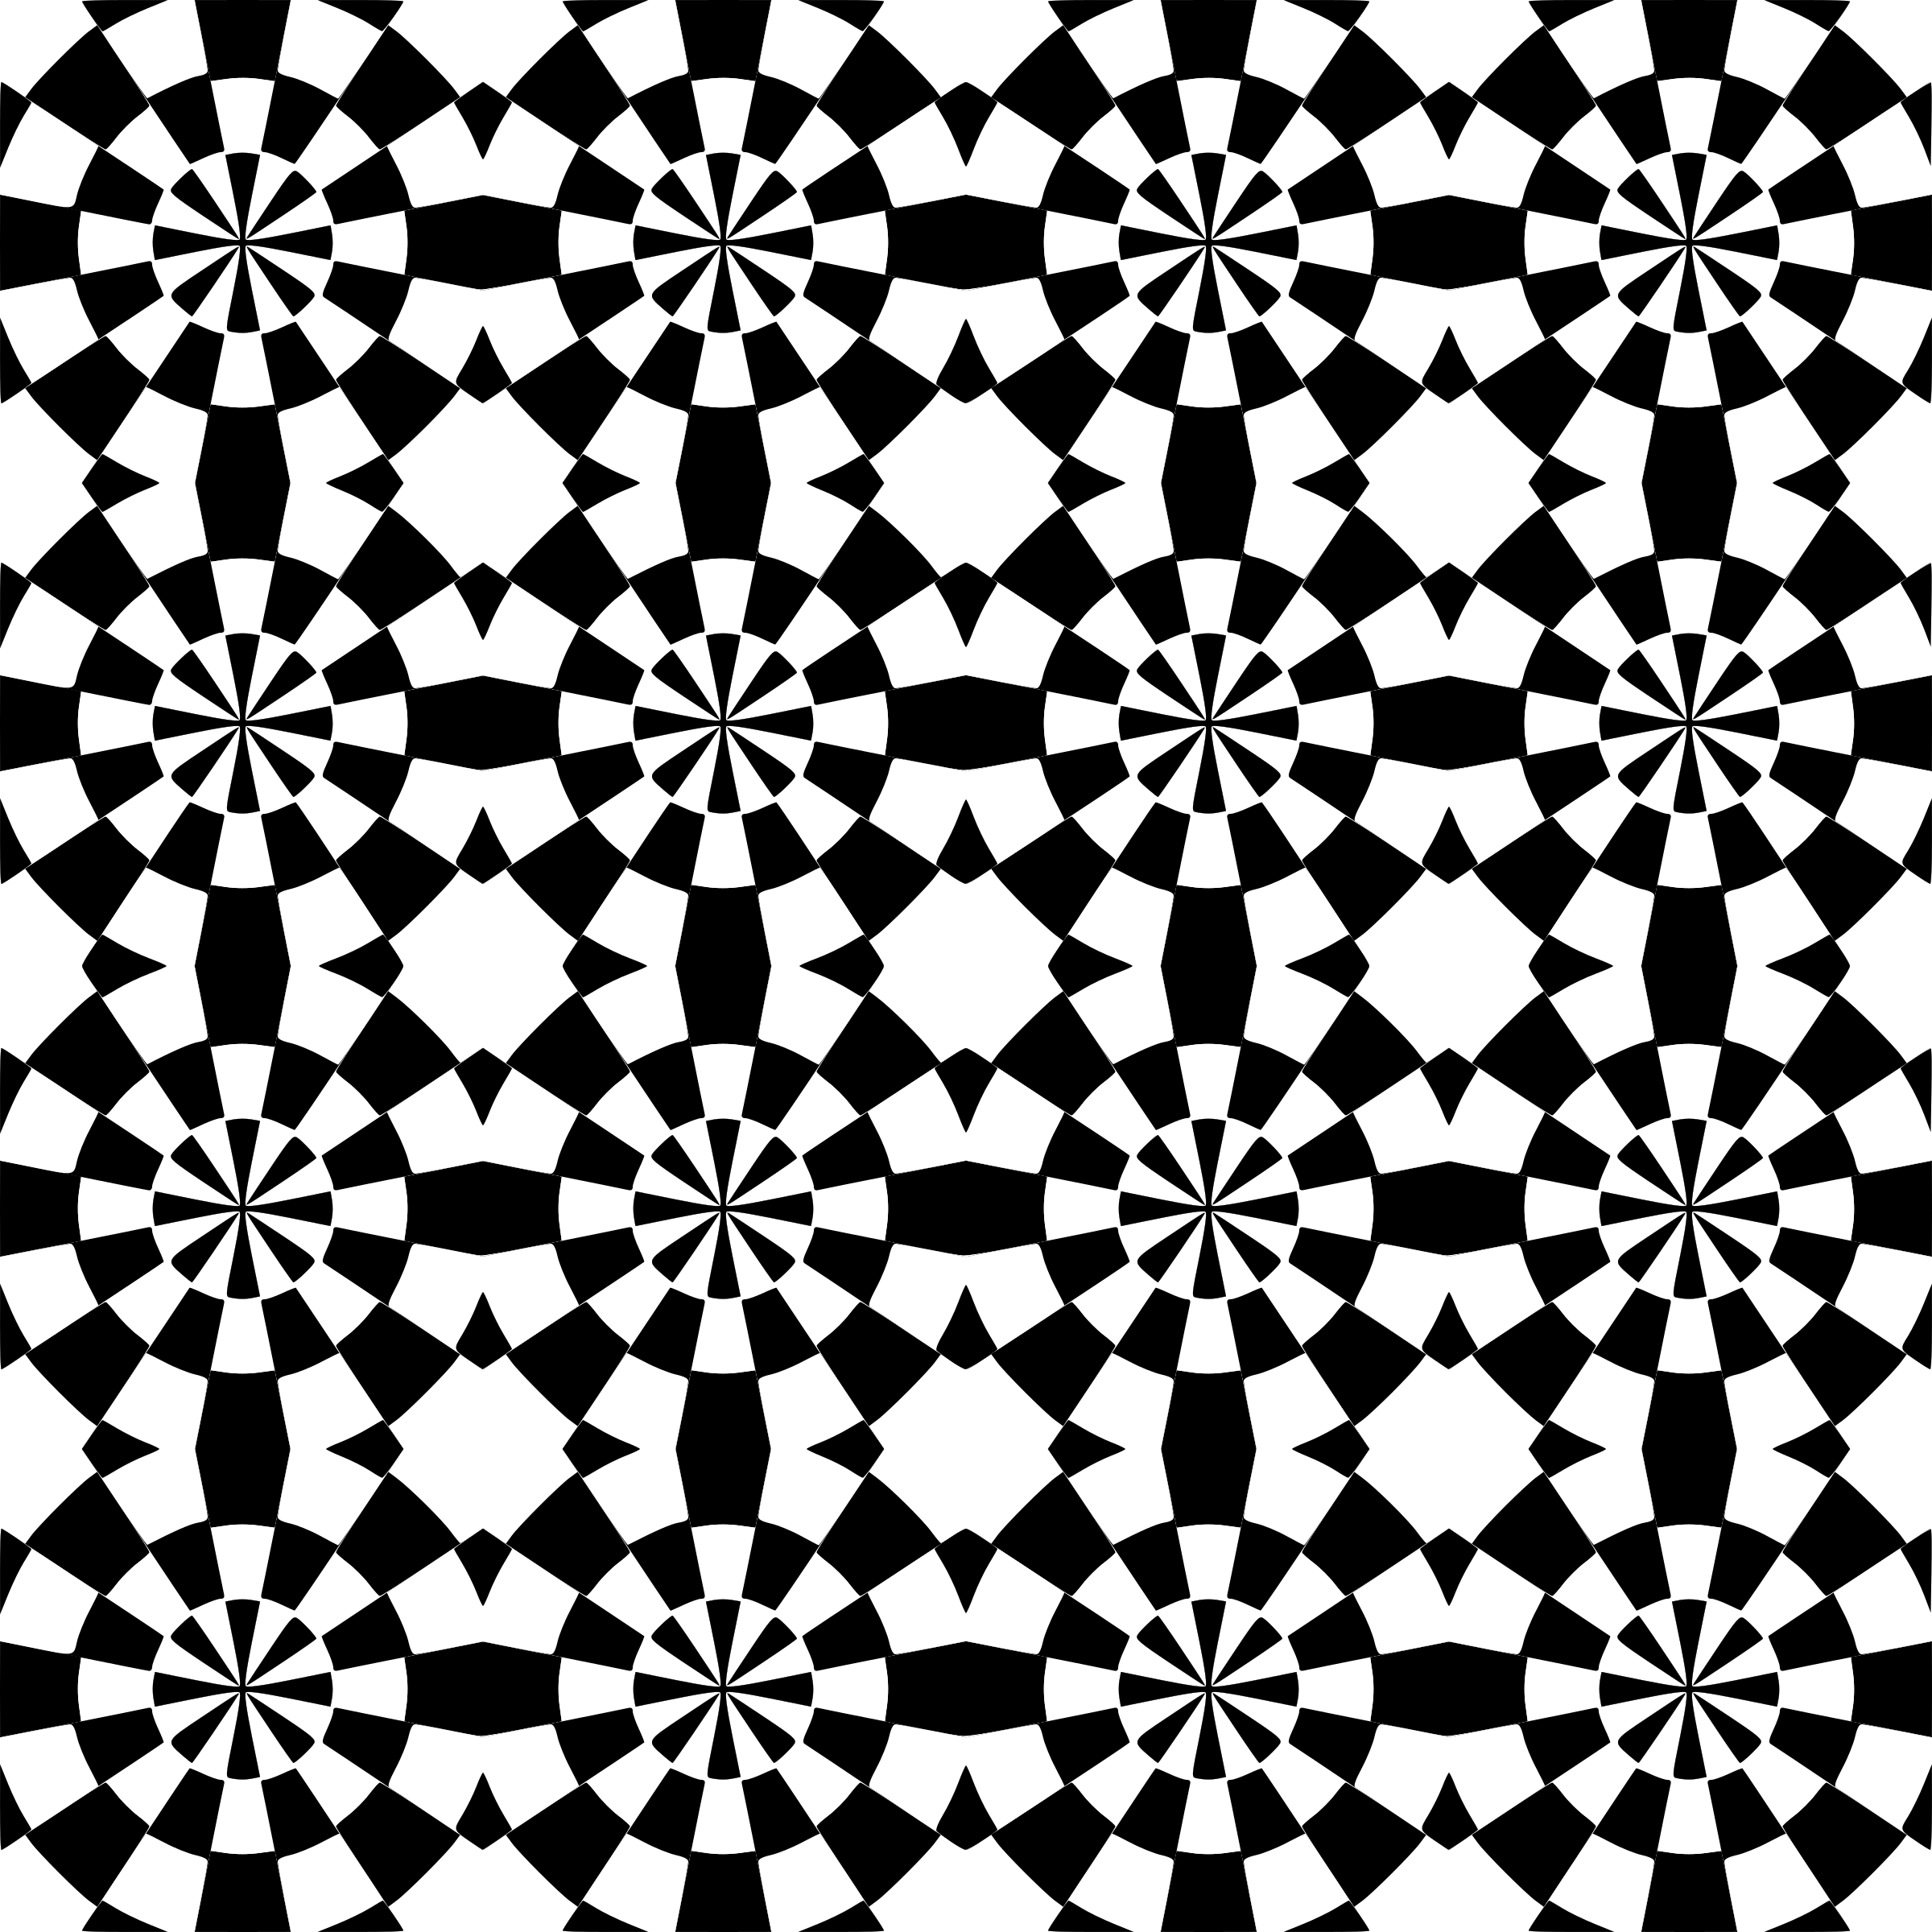 https://openclipart.org/image/2400px/svg_to_png/227542/BackgroundPattern9BW.png